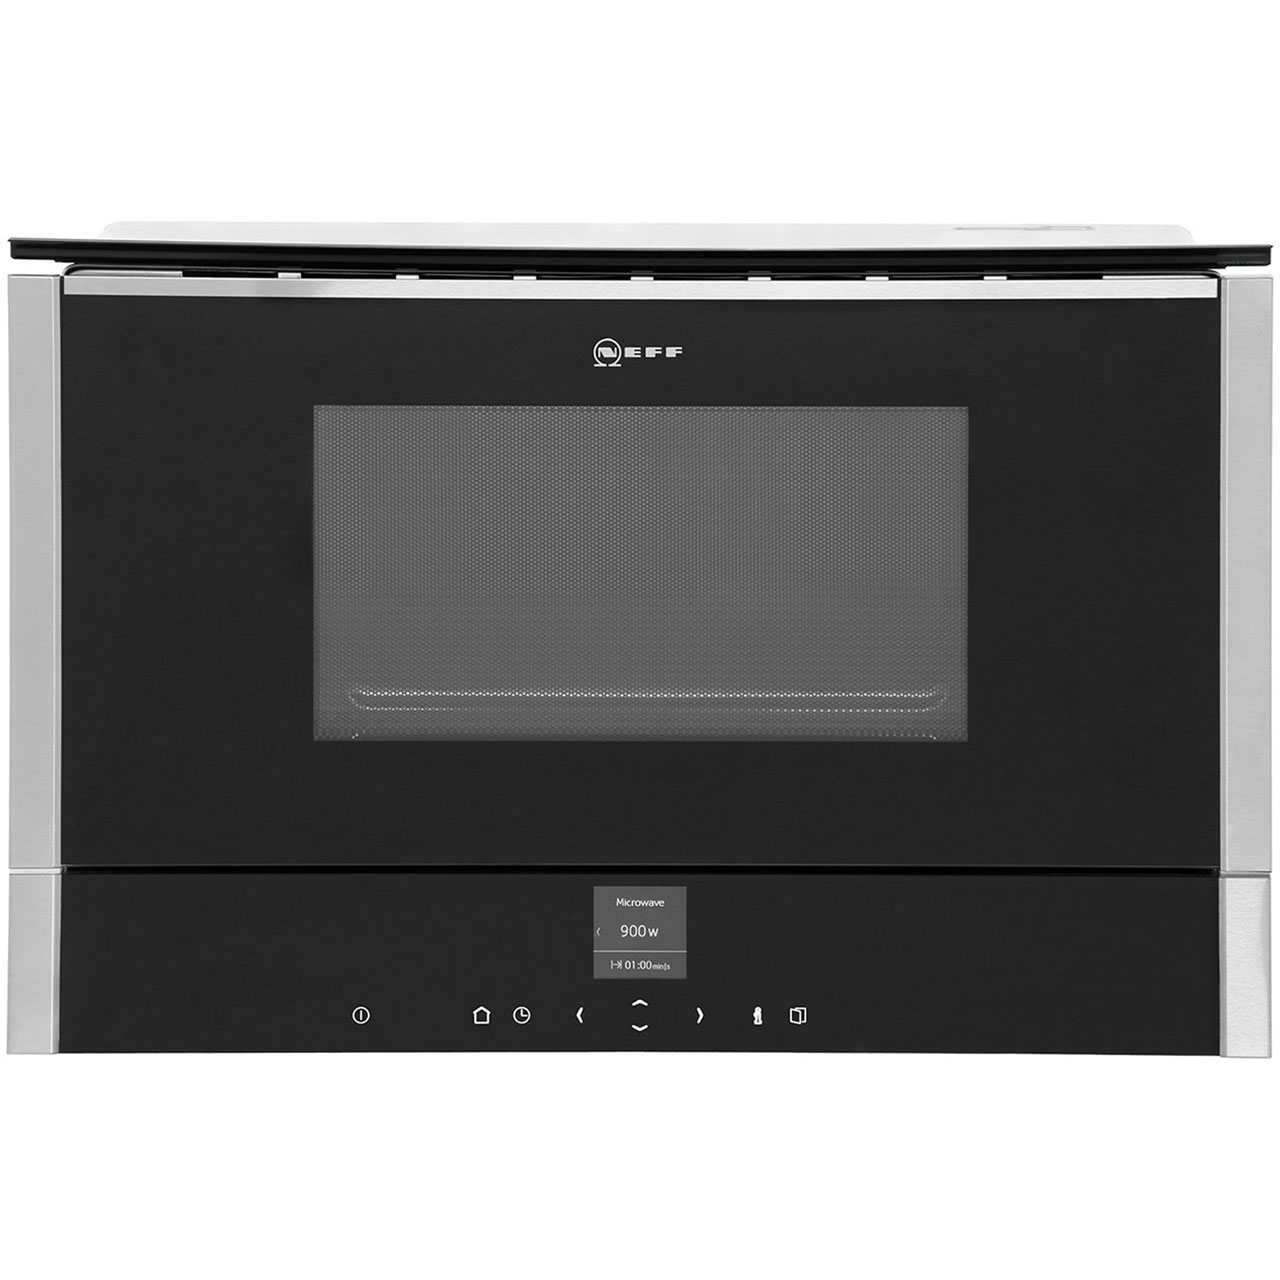 Integrated Microwave Neff Microwave Oven Shop For Cheap Cookers And Ovens And